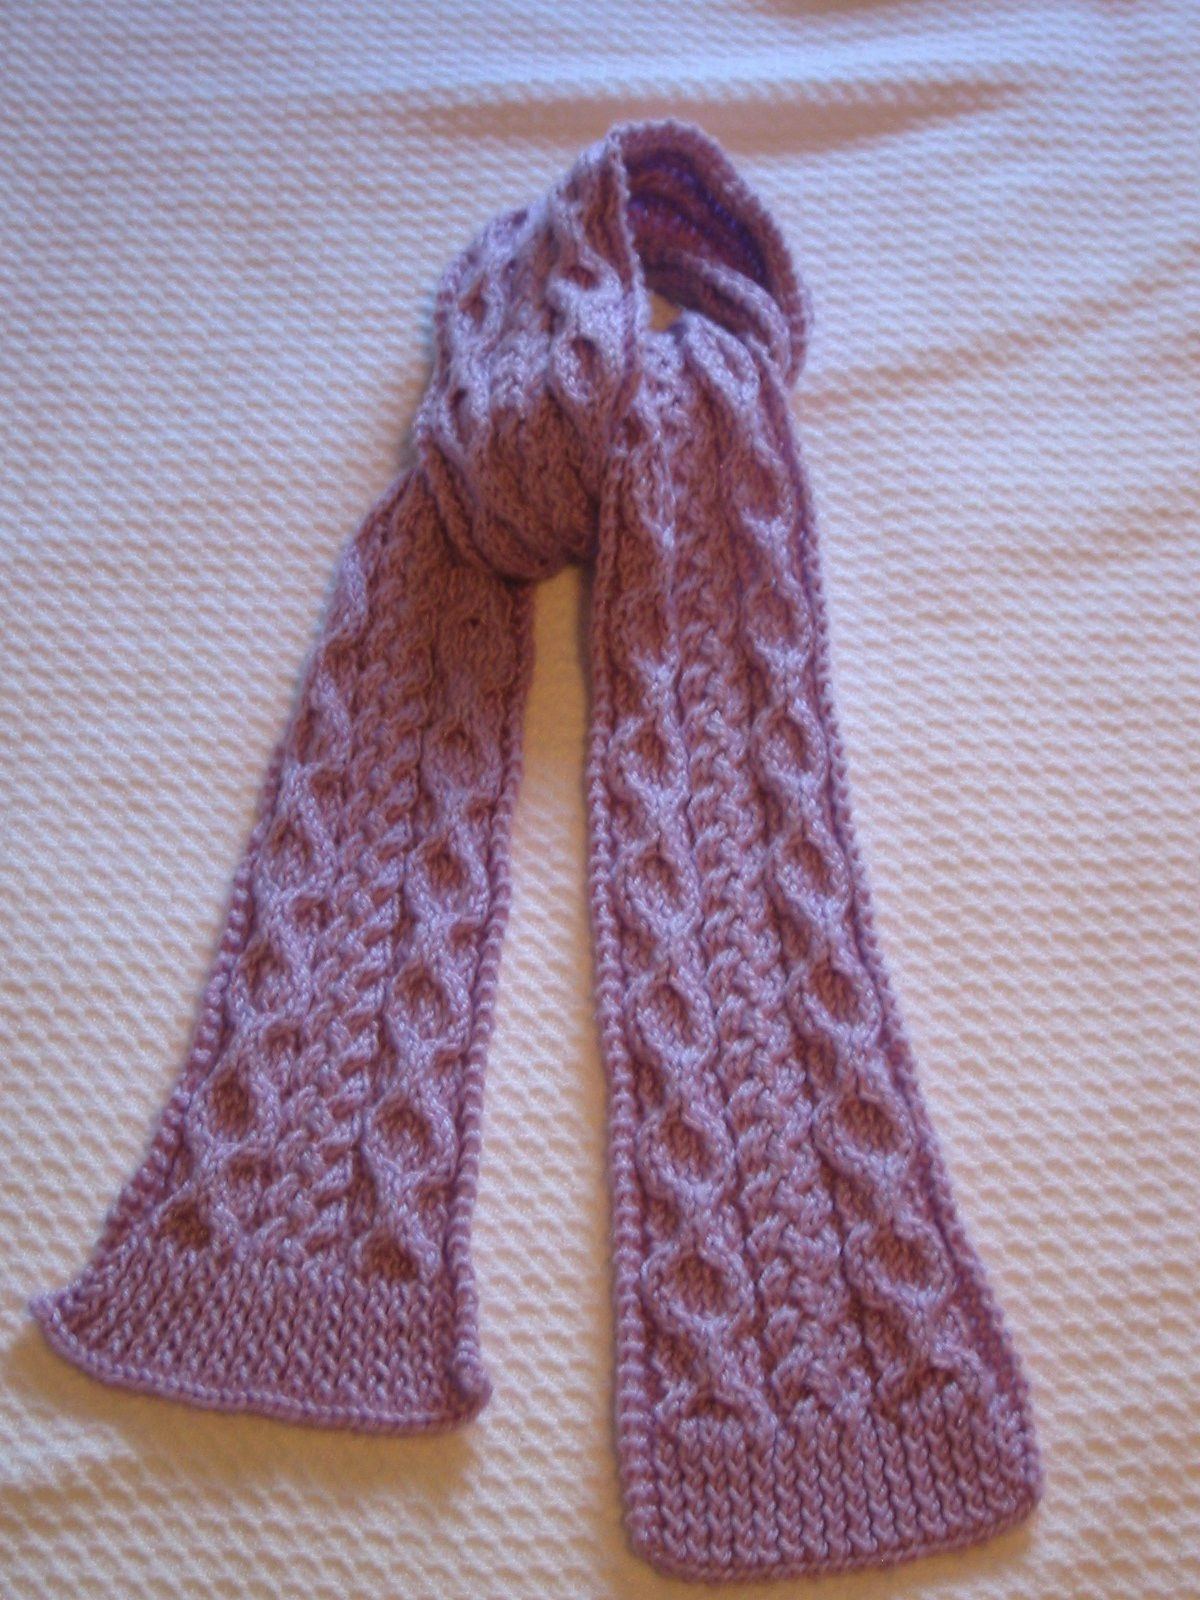 Awesome Cable Knit Scarf Pattern Cable Knit Scarf Pattern Of Luxury 44 Ideas Cable Knit Scarf Pattern